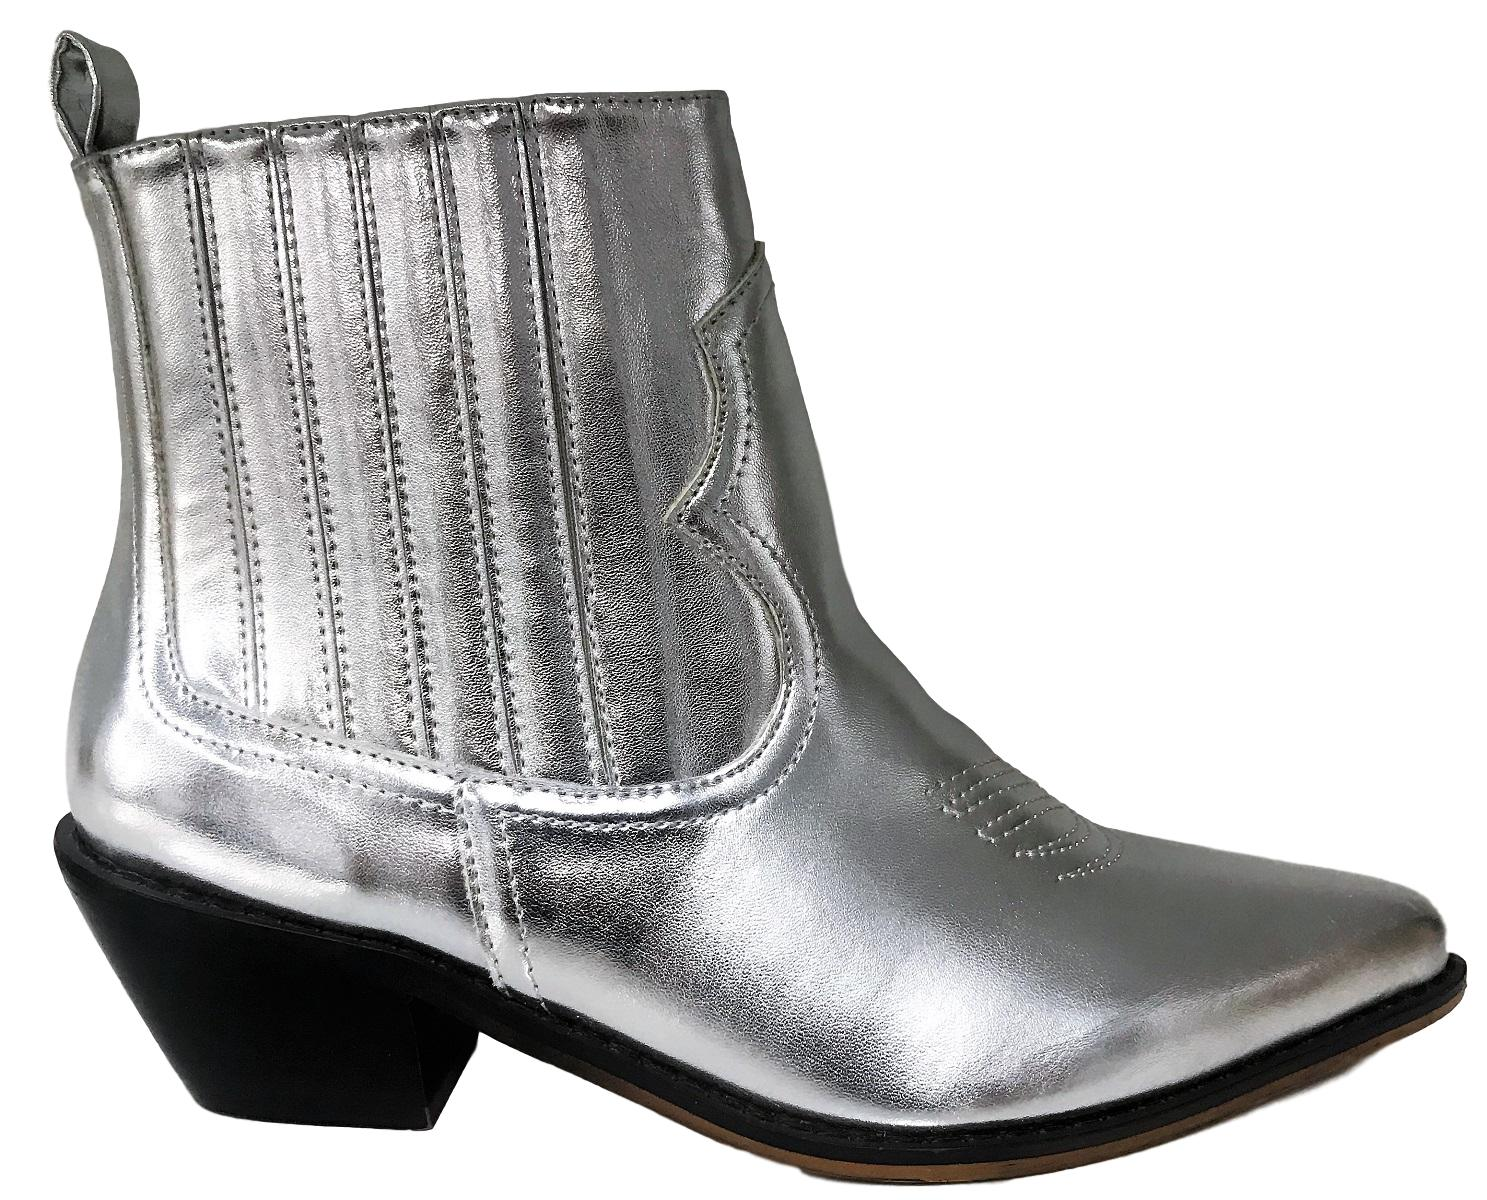 Charles-2 Women Ankle Western Cowboy Cowgirl Elastic Stretchy Pointed Toe Ankle Women High Boots Silver 2bd782